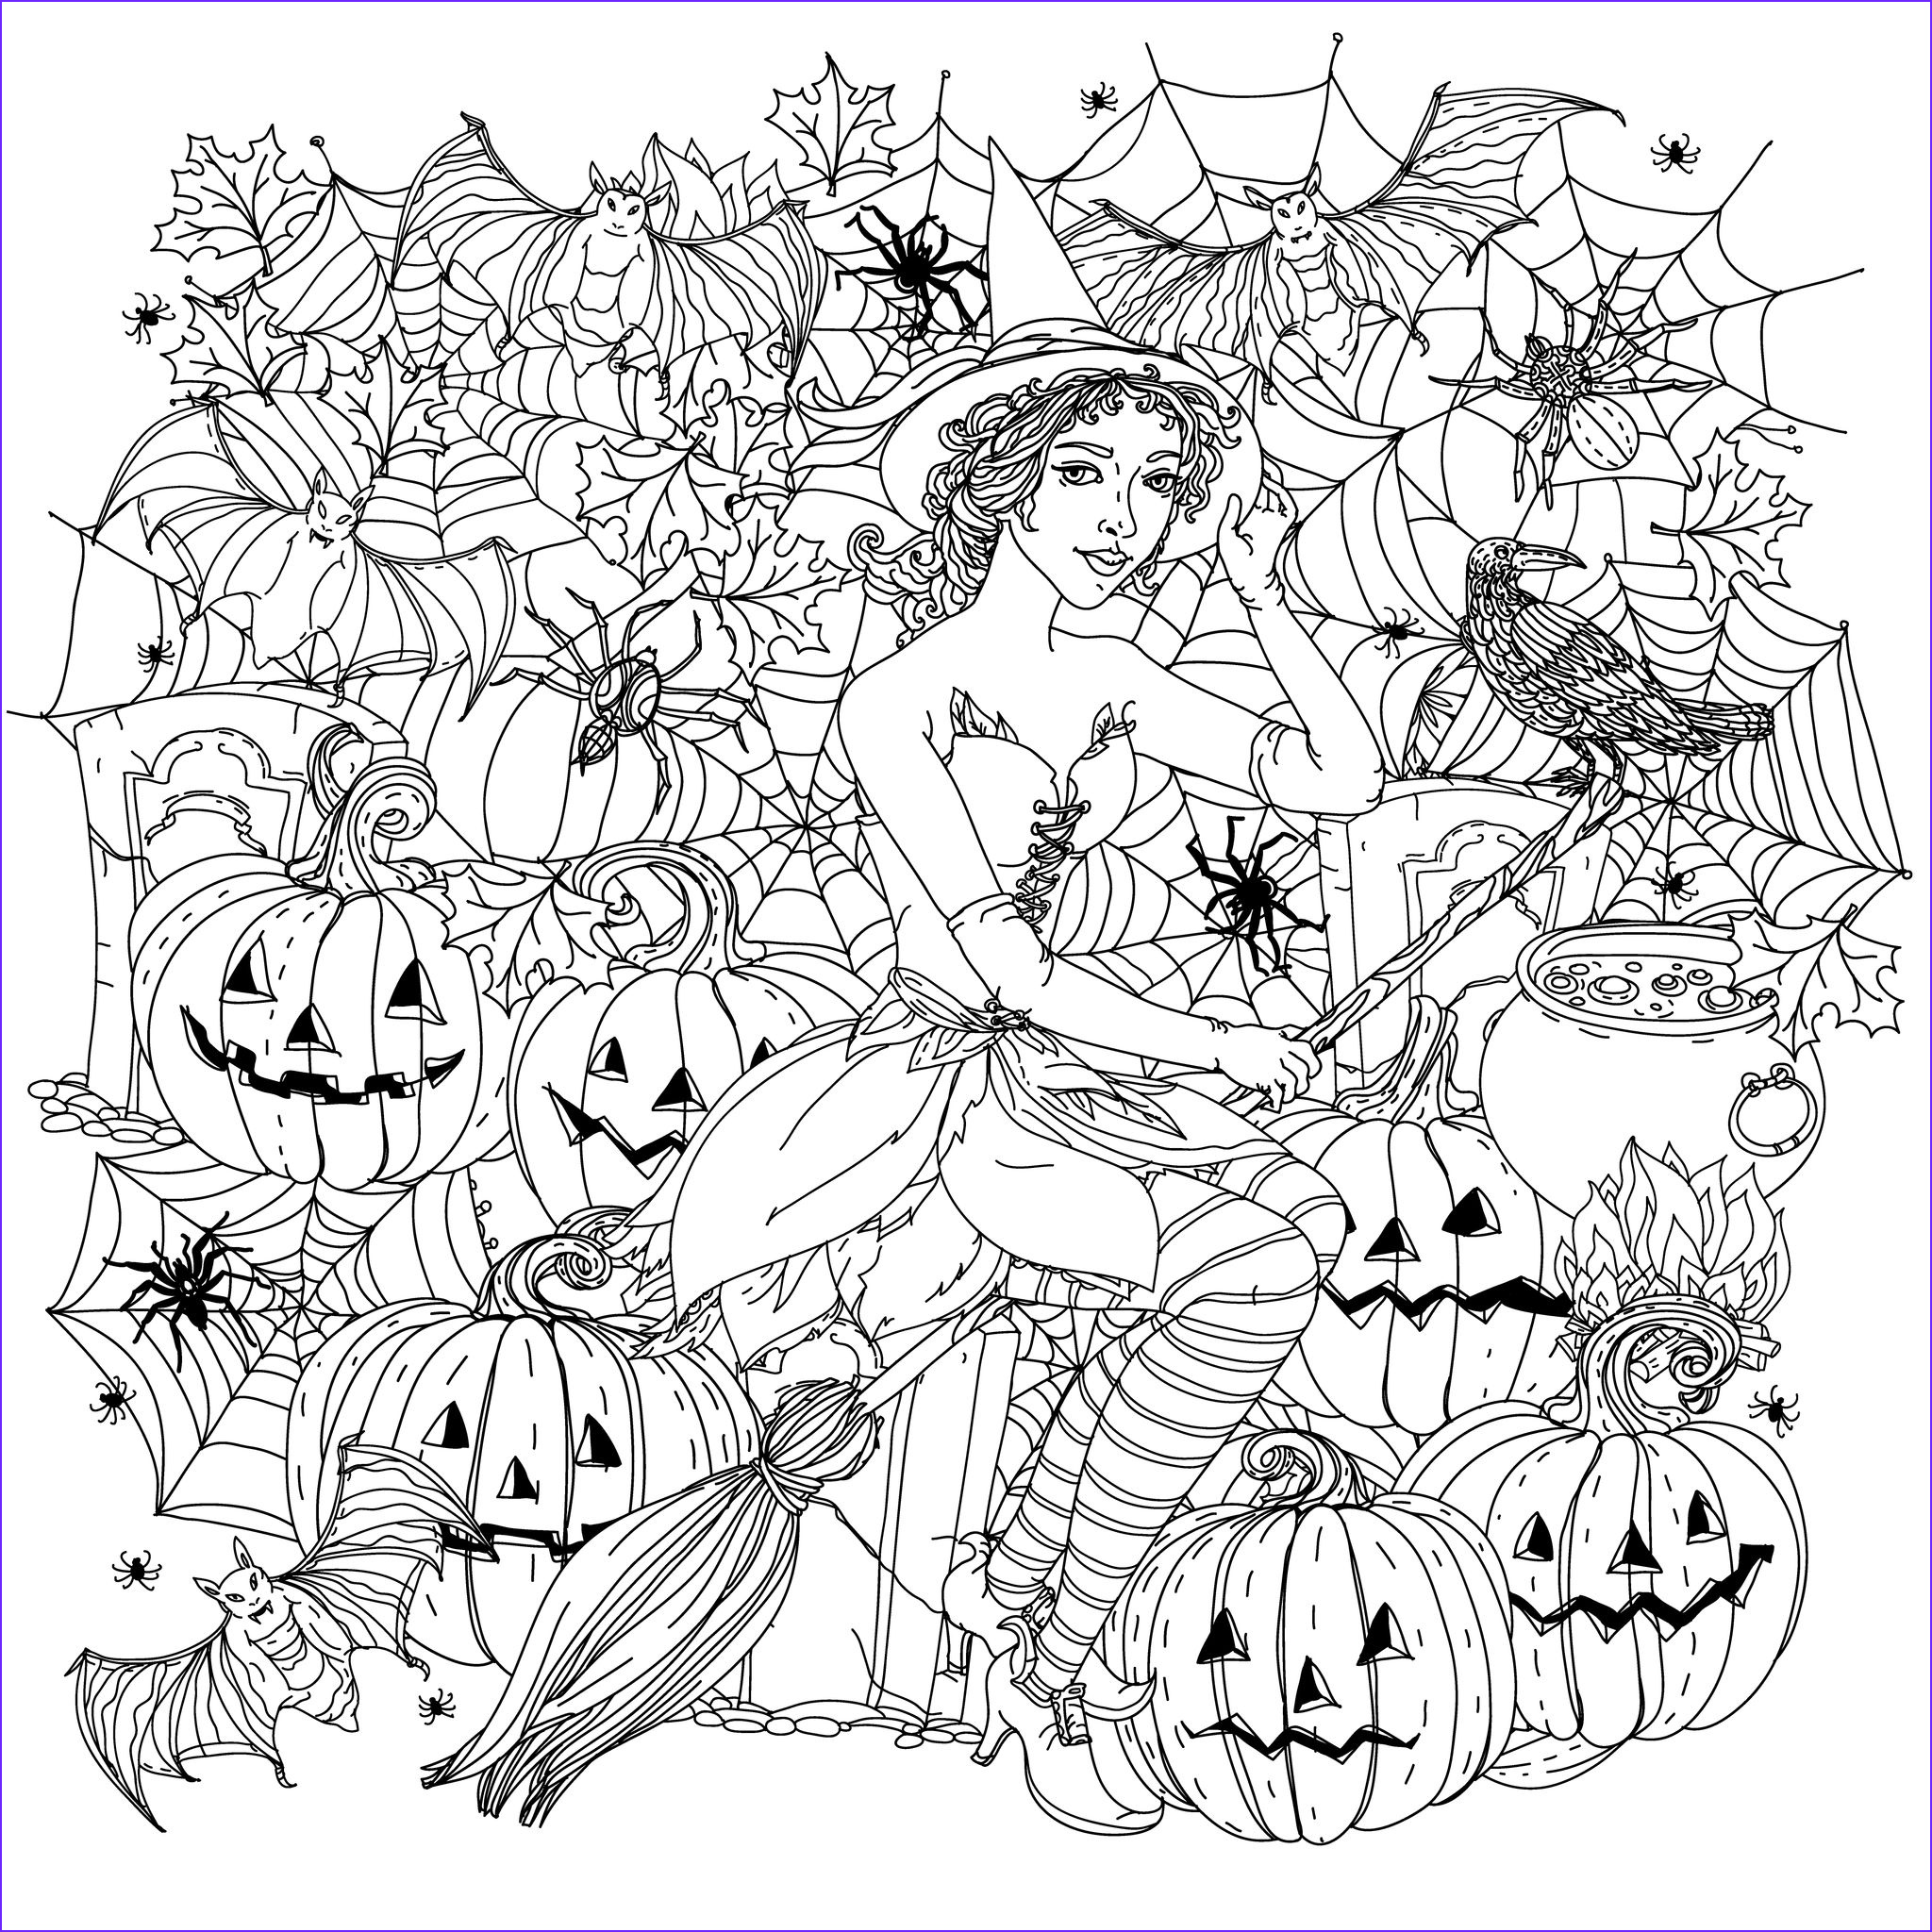 Coloring Page for Adults Halloween Unique Stock Halloween Witch with Pumpkins Halloween Adult Coloring Pages